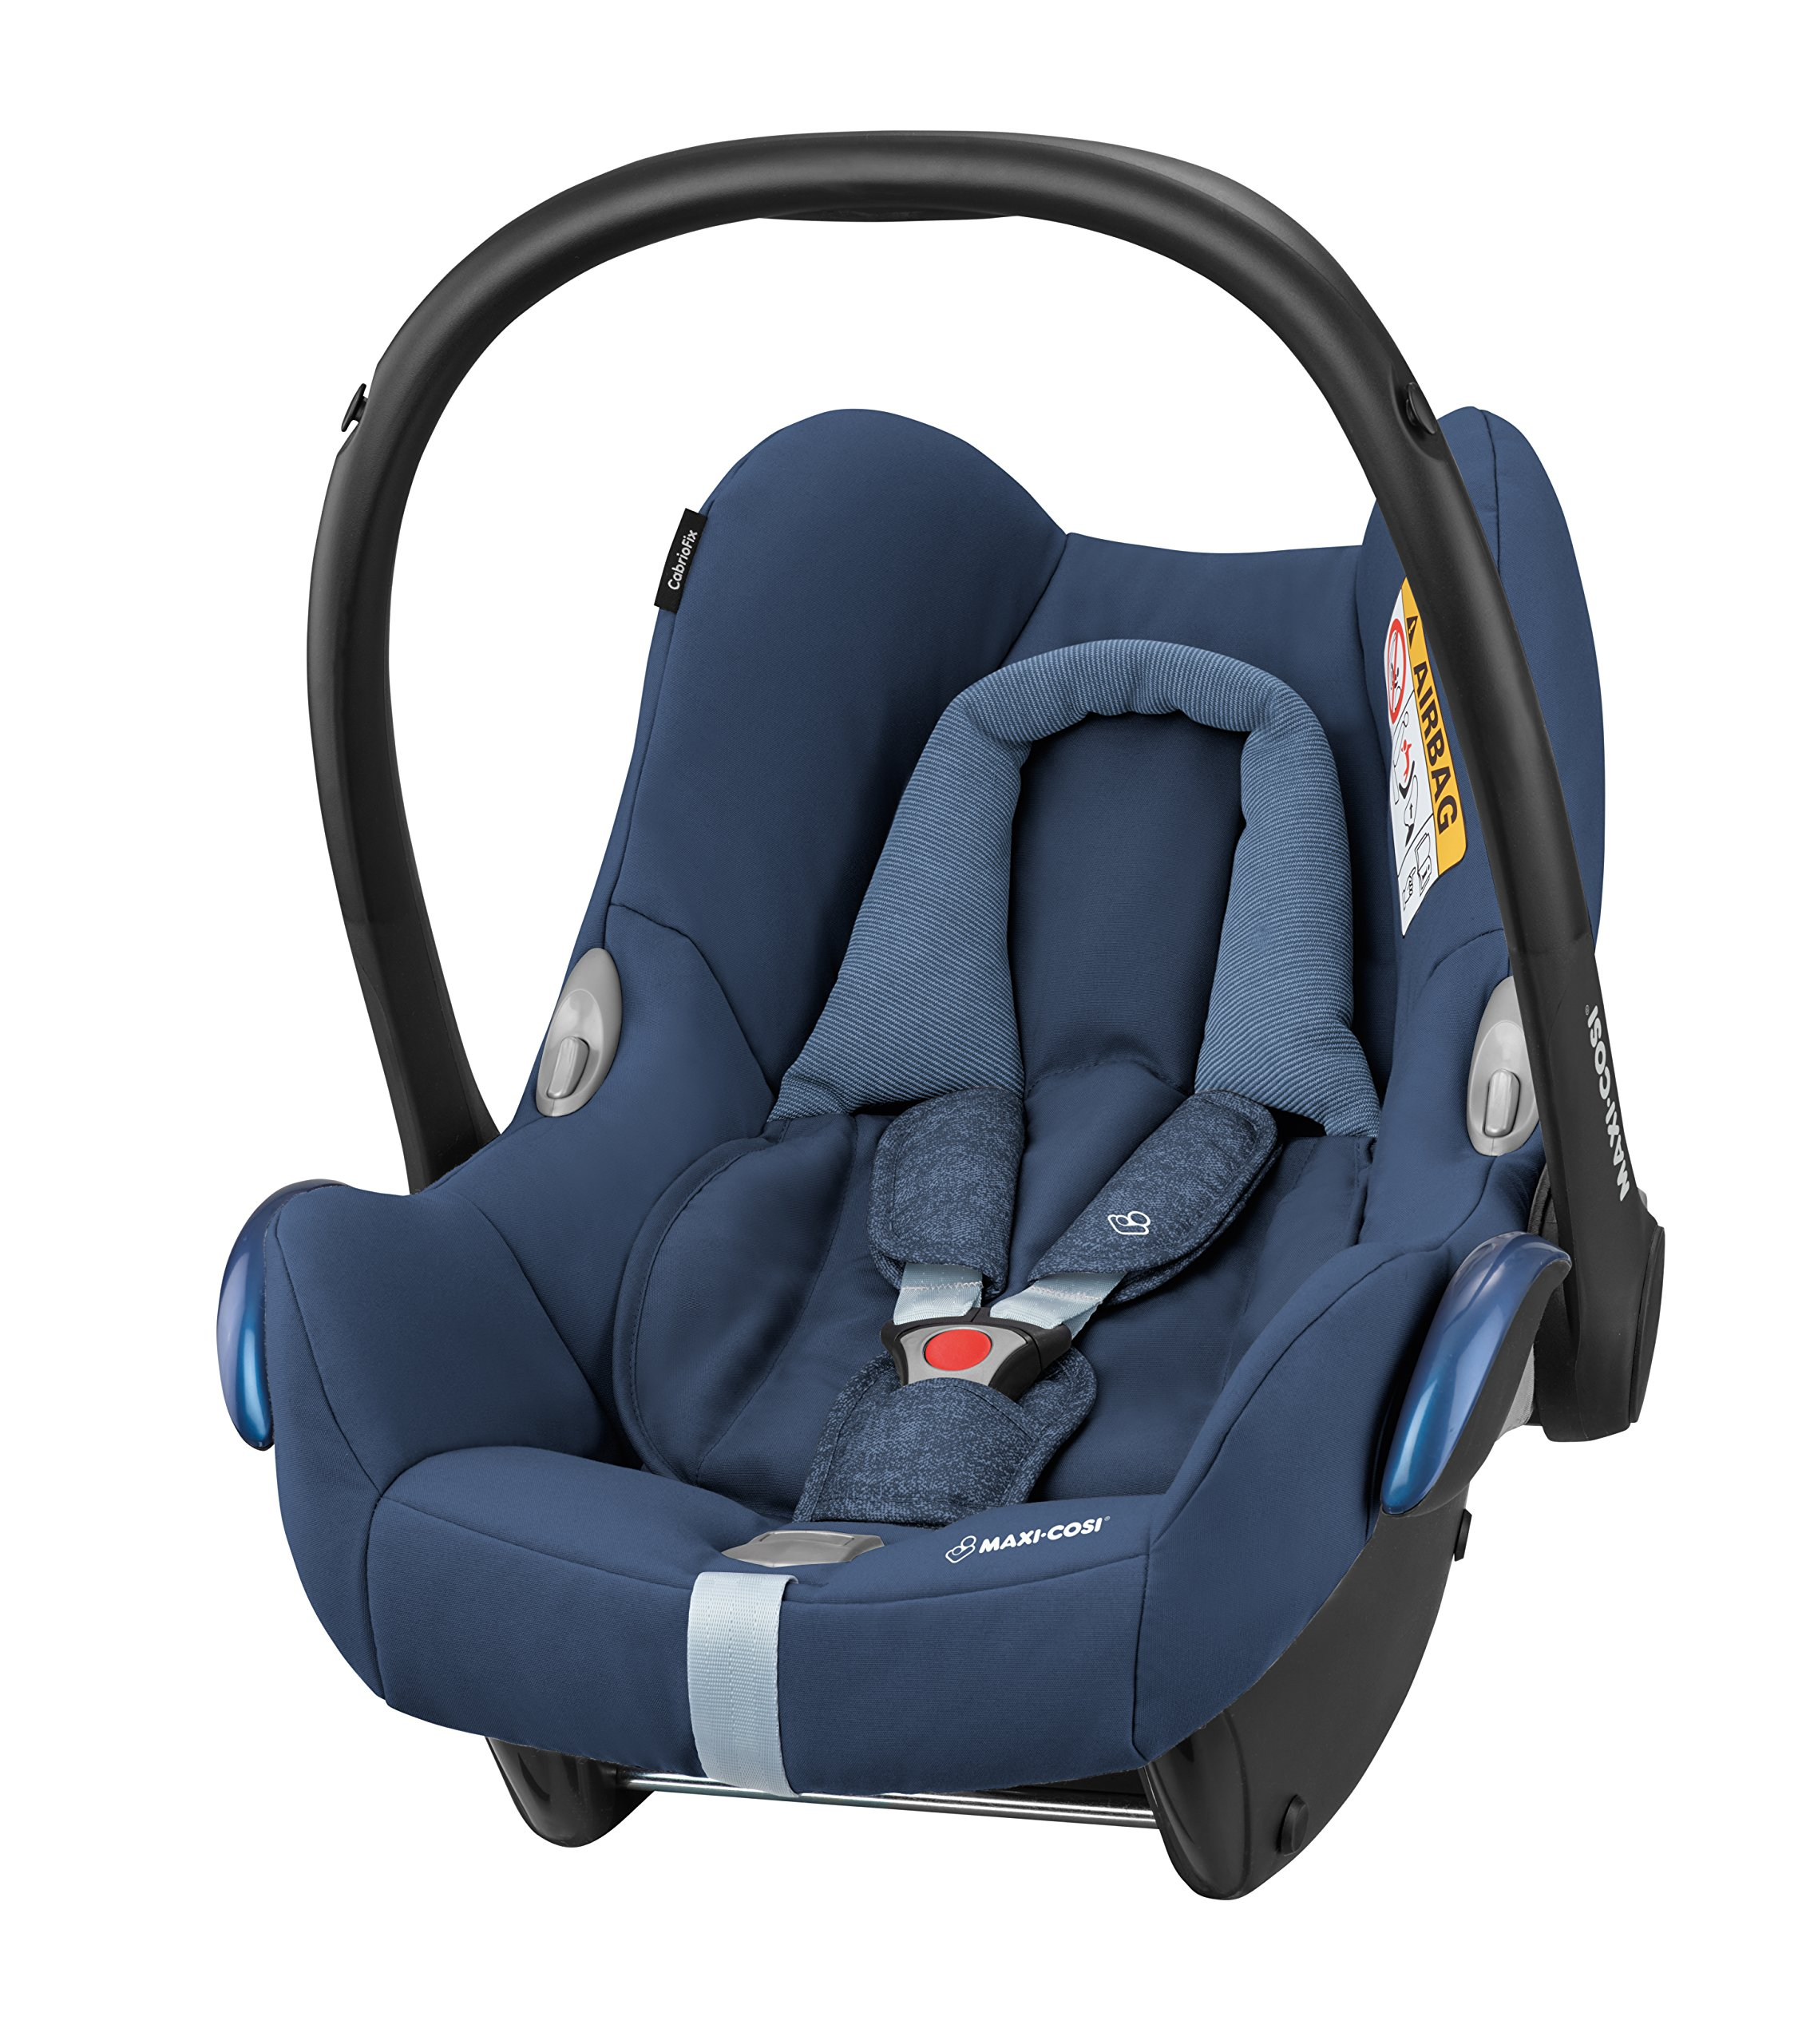 Maxi-Cosi Cabriofix Group 0+ Car Seat, Nomad Blue with EasyFix Car Seat Base, Isofix and Belt Maxi-Cosi Optimal side impact protection: maxi-cost's side protection system technology features in the wings of the car seat to reduce the risk of injury in a side impact collision Click-and-go installation: quick and easy installation with any maxi-cost base unit Flexible travel system: compatible with a variety of pushchairs including quinsy and maxi-cost pushchairs 2